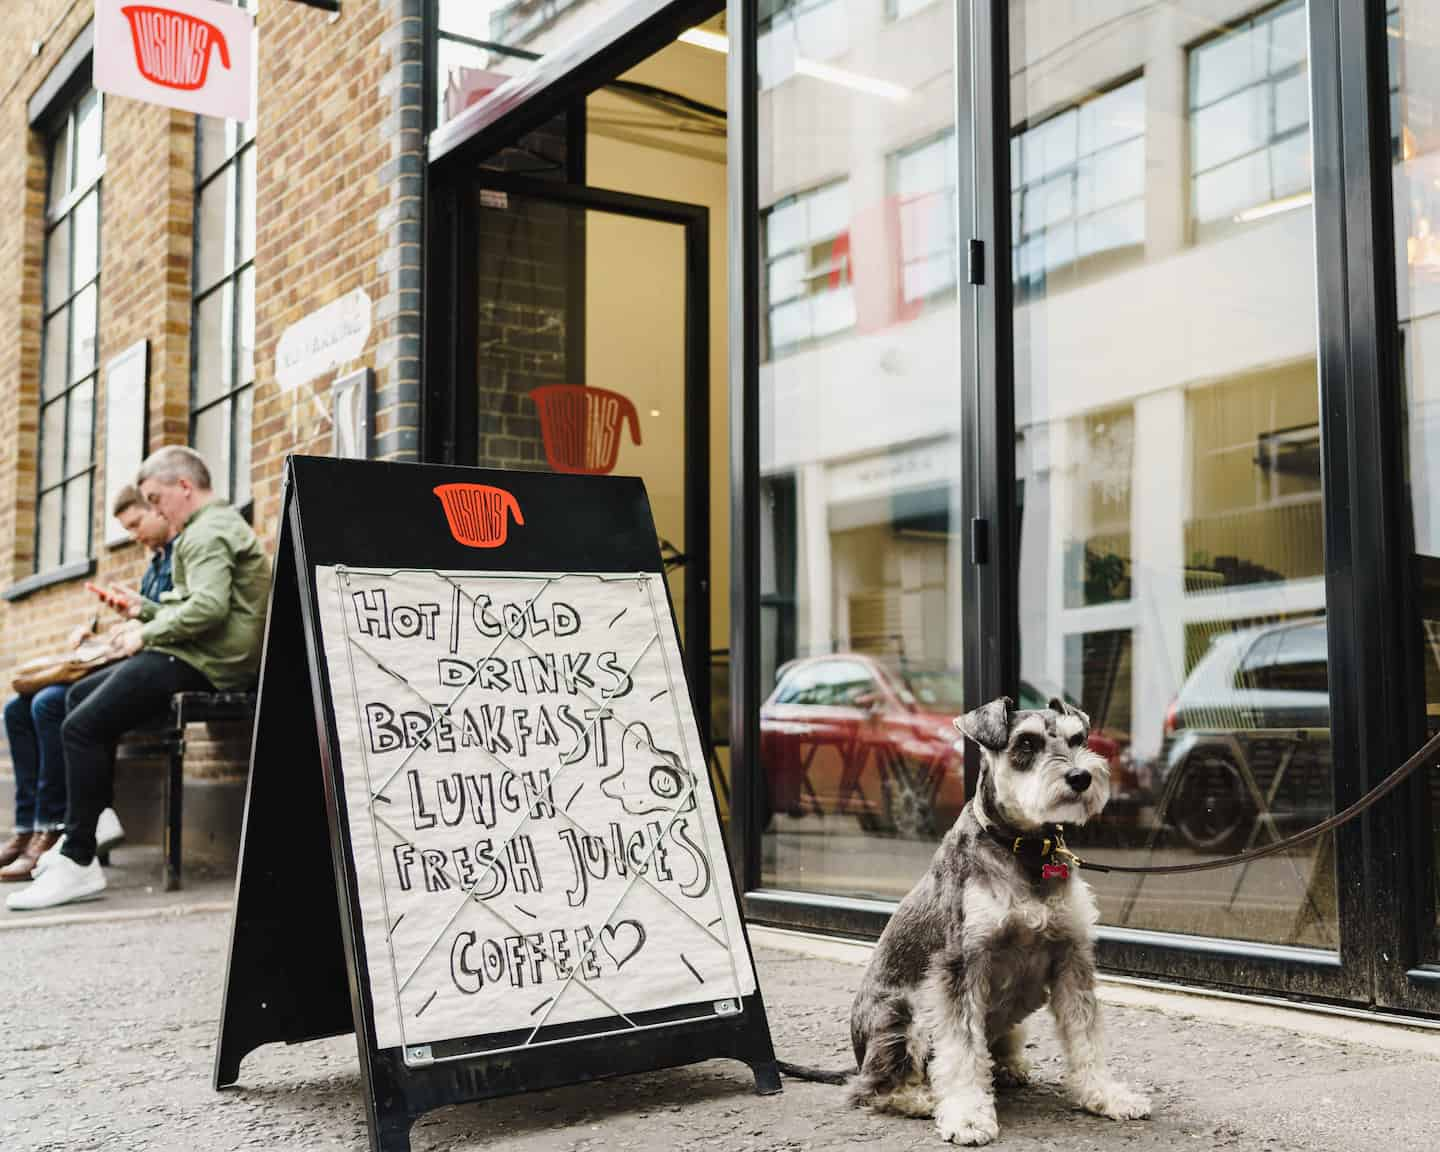 My Dog Friendly London By Rusty Red The Schnauzer | Dog Friendly Shoreditch and Hoxton Visions Canteen 3